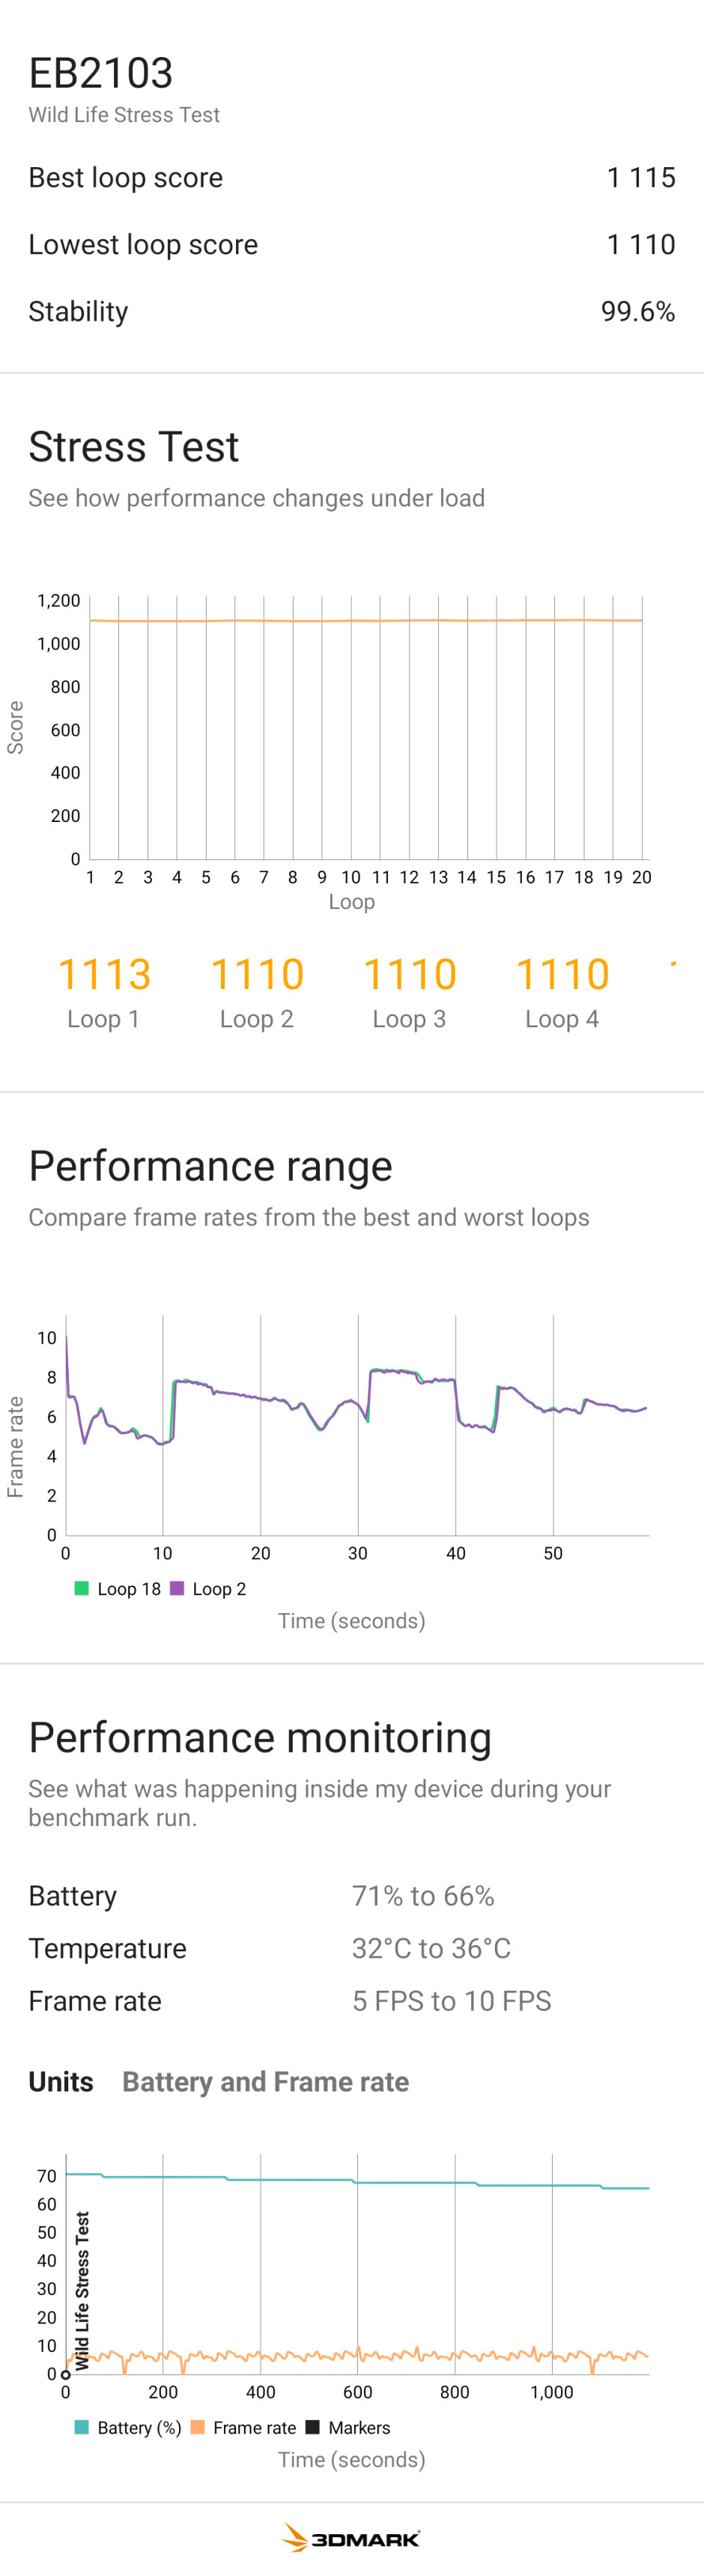 OnePlus Nord CE 5G sustained gaming performance in 3D Mark benchmark - OnePlus Nord CE 5G Review